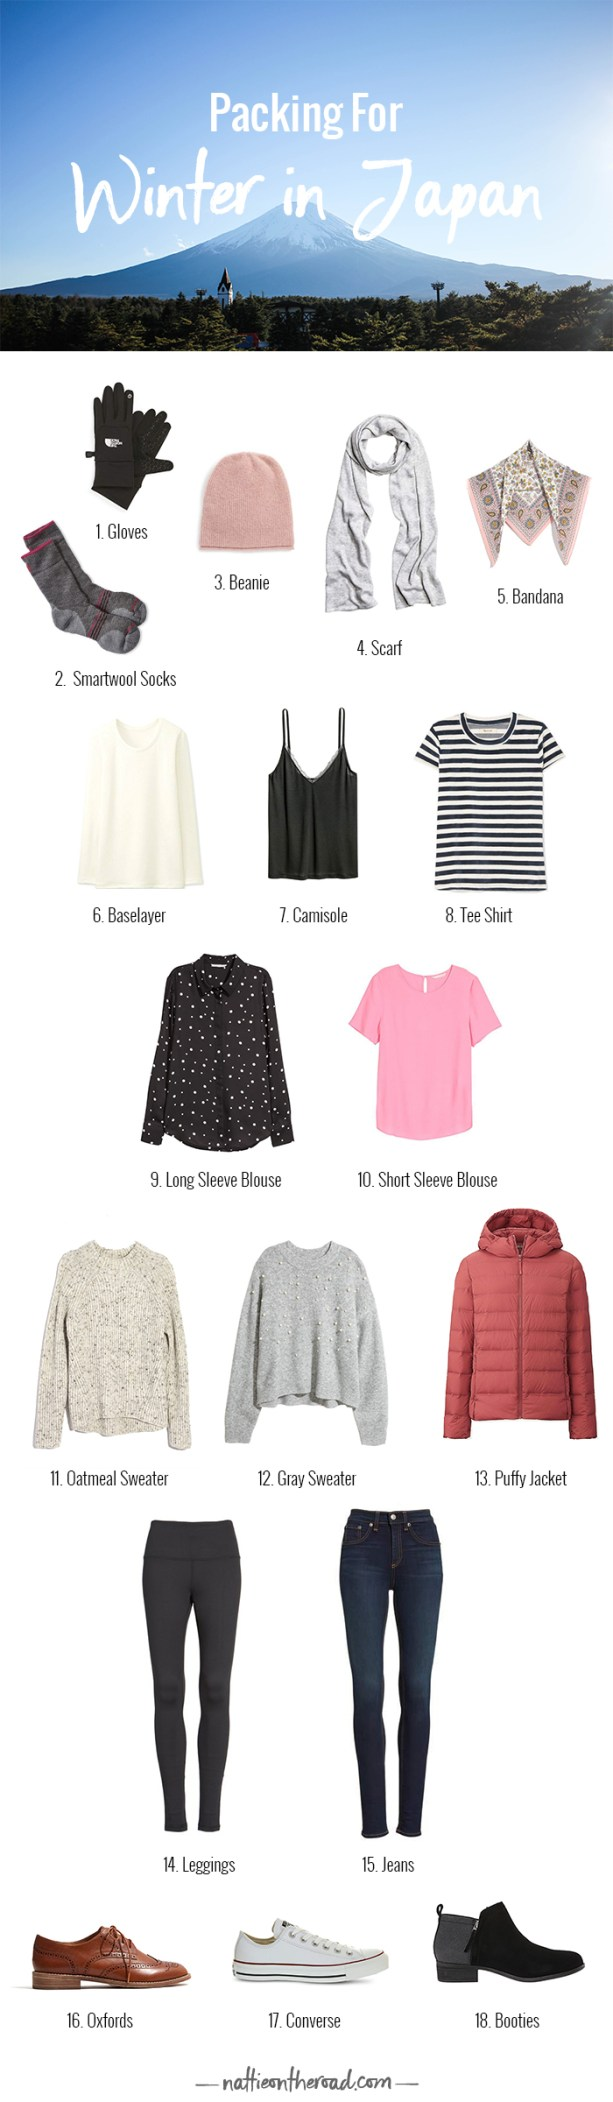 Packing List for Japan in Winter